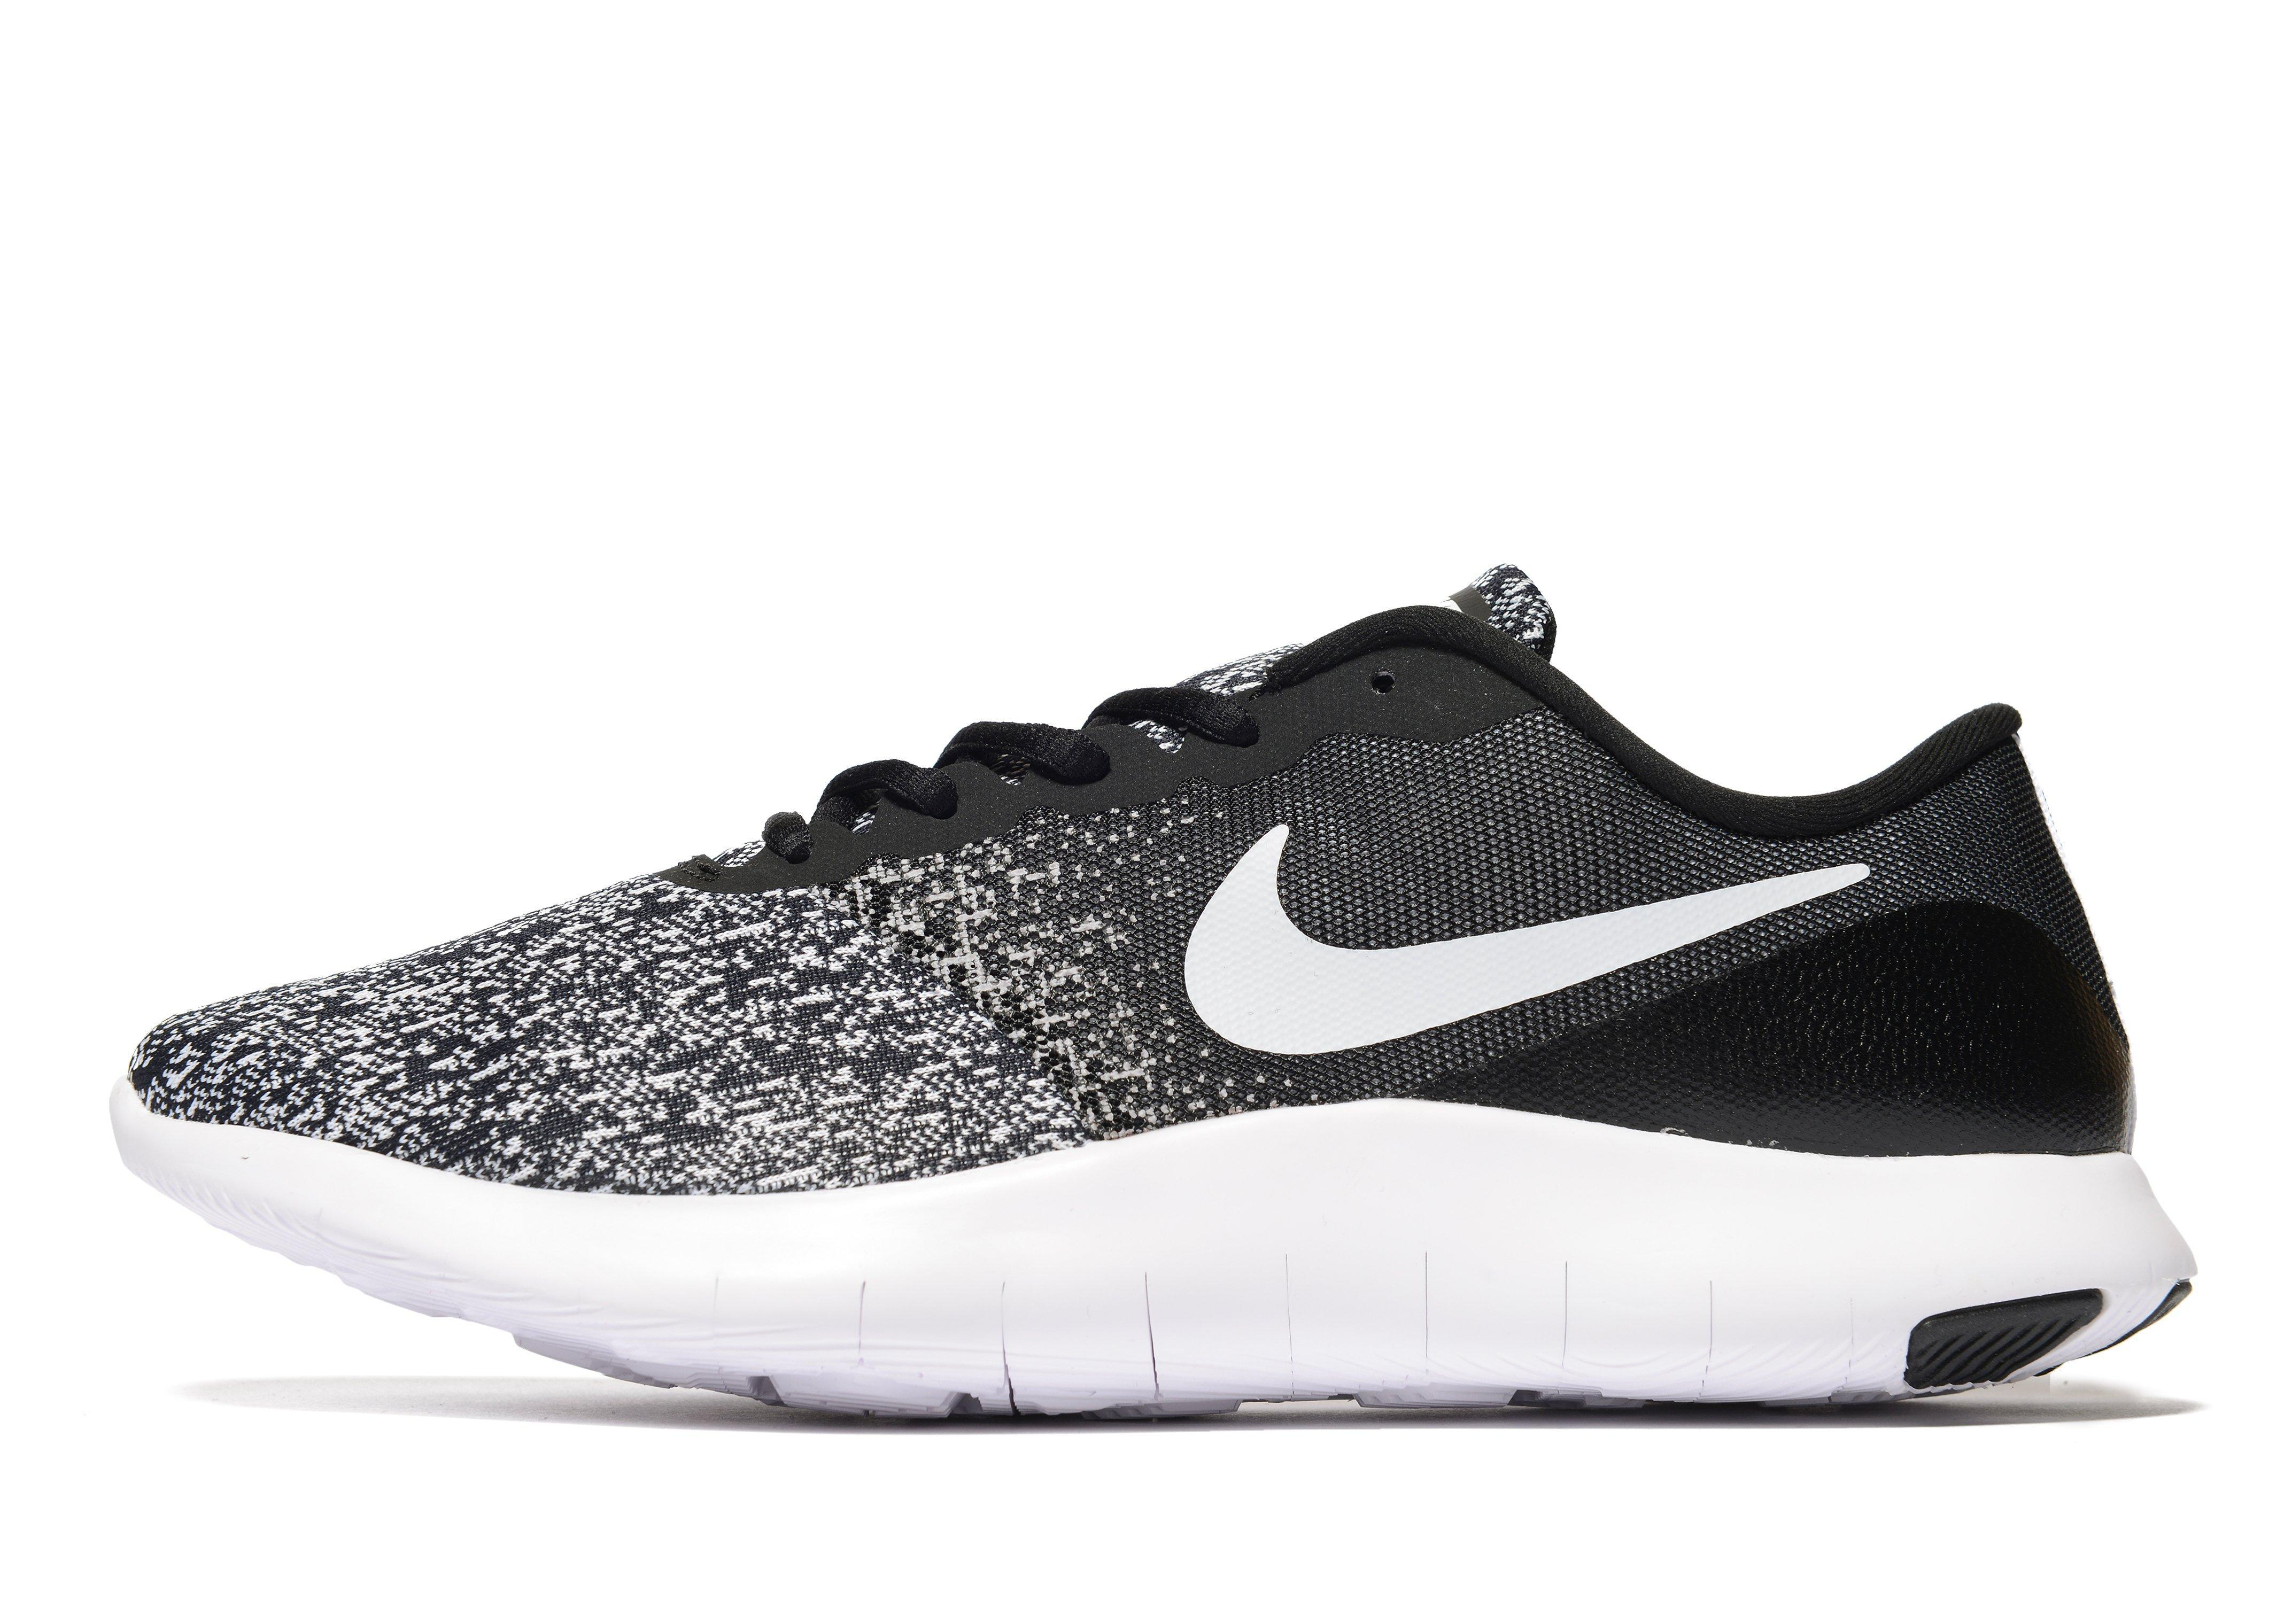 9bfe8c62c2f7e Lyst - Nike Flex Contact in Black for Men